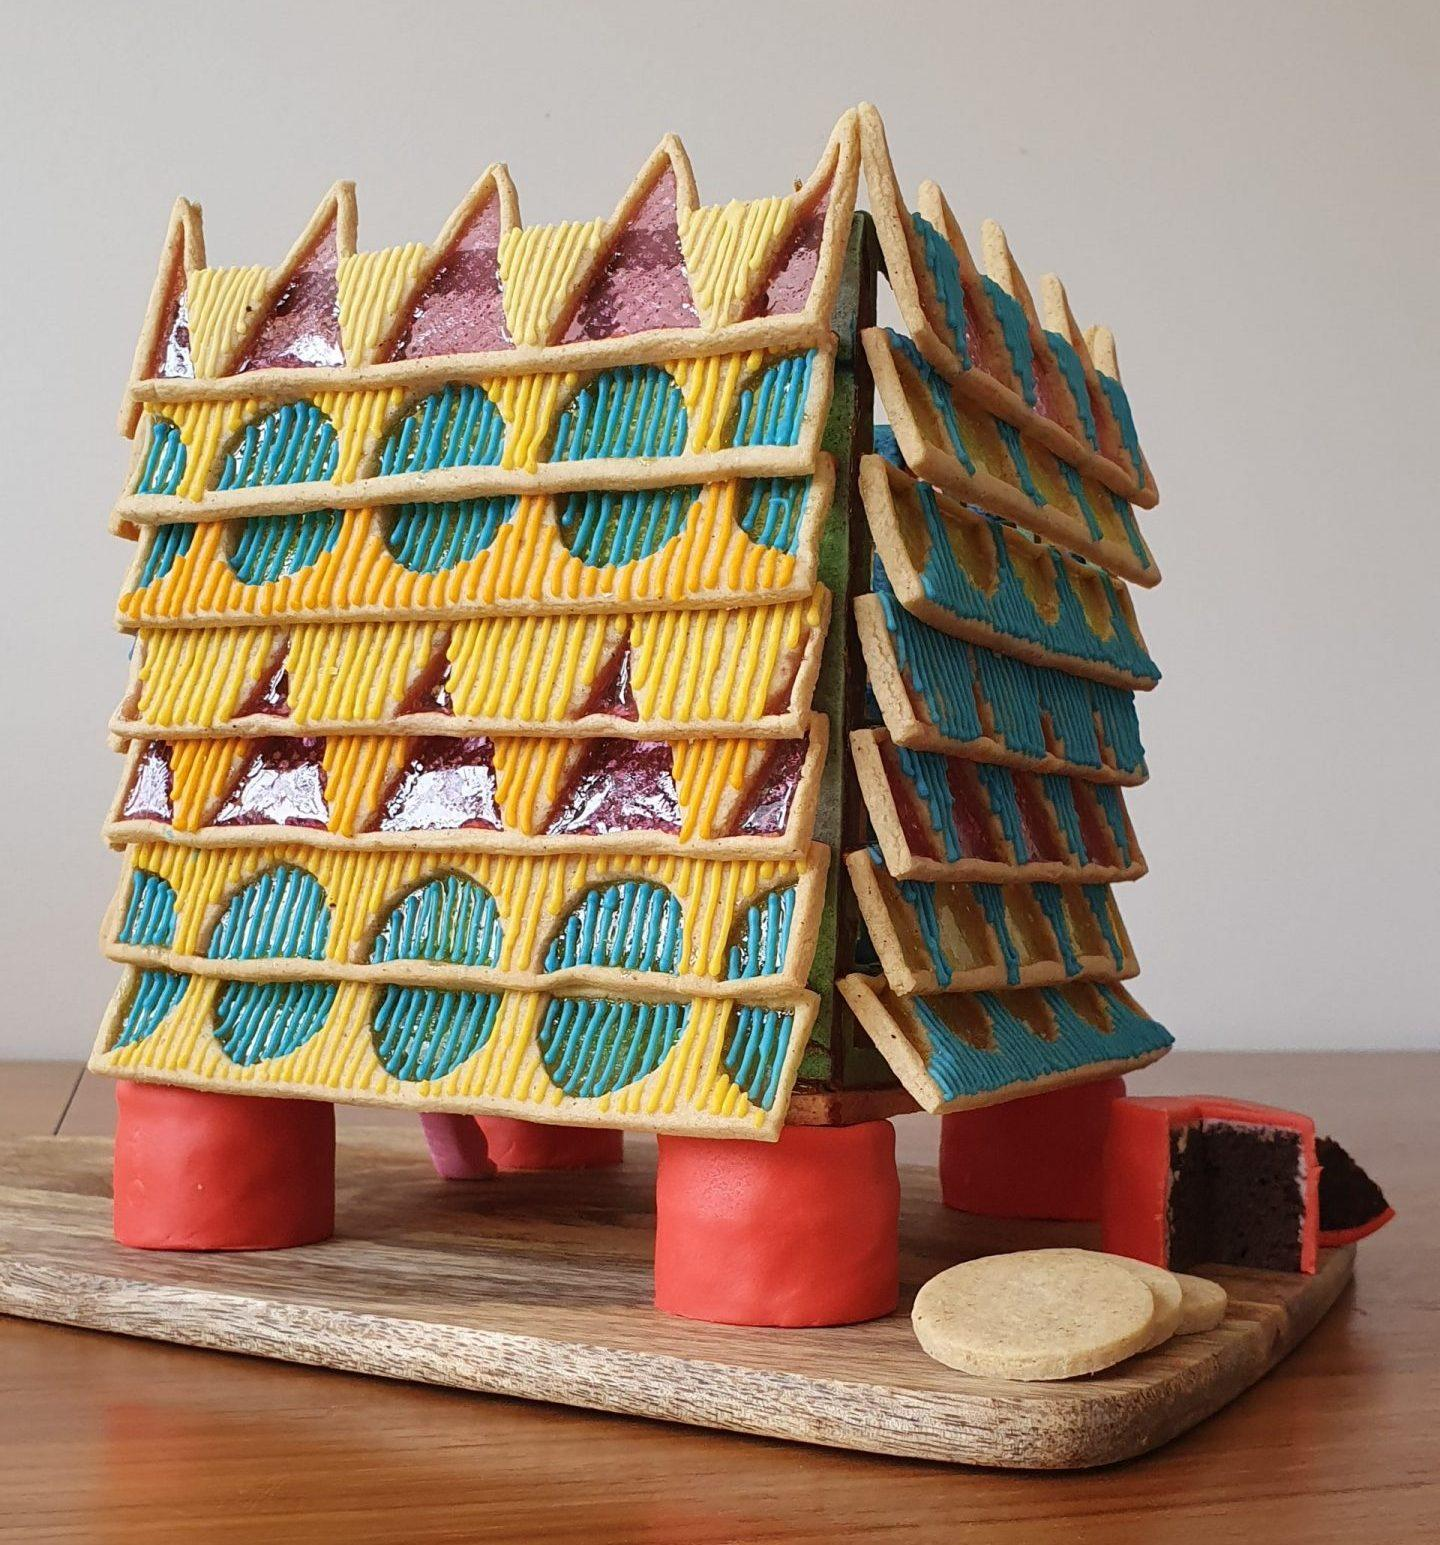 architectural cakes are part of the 2021 London festival of architecture programme